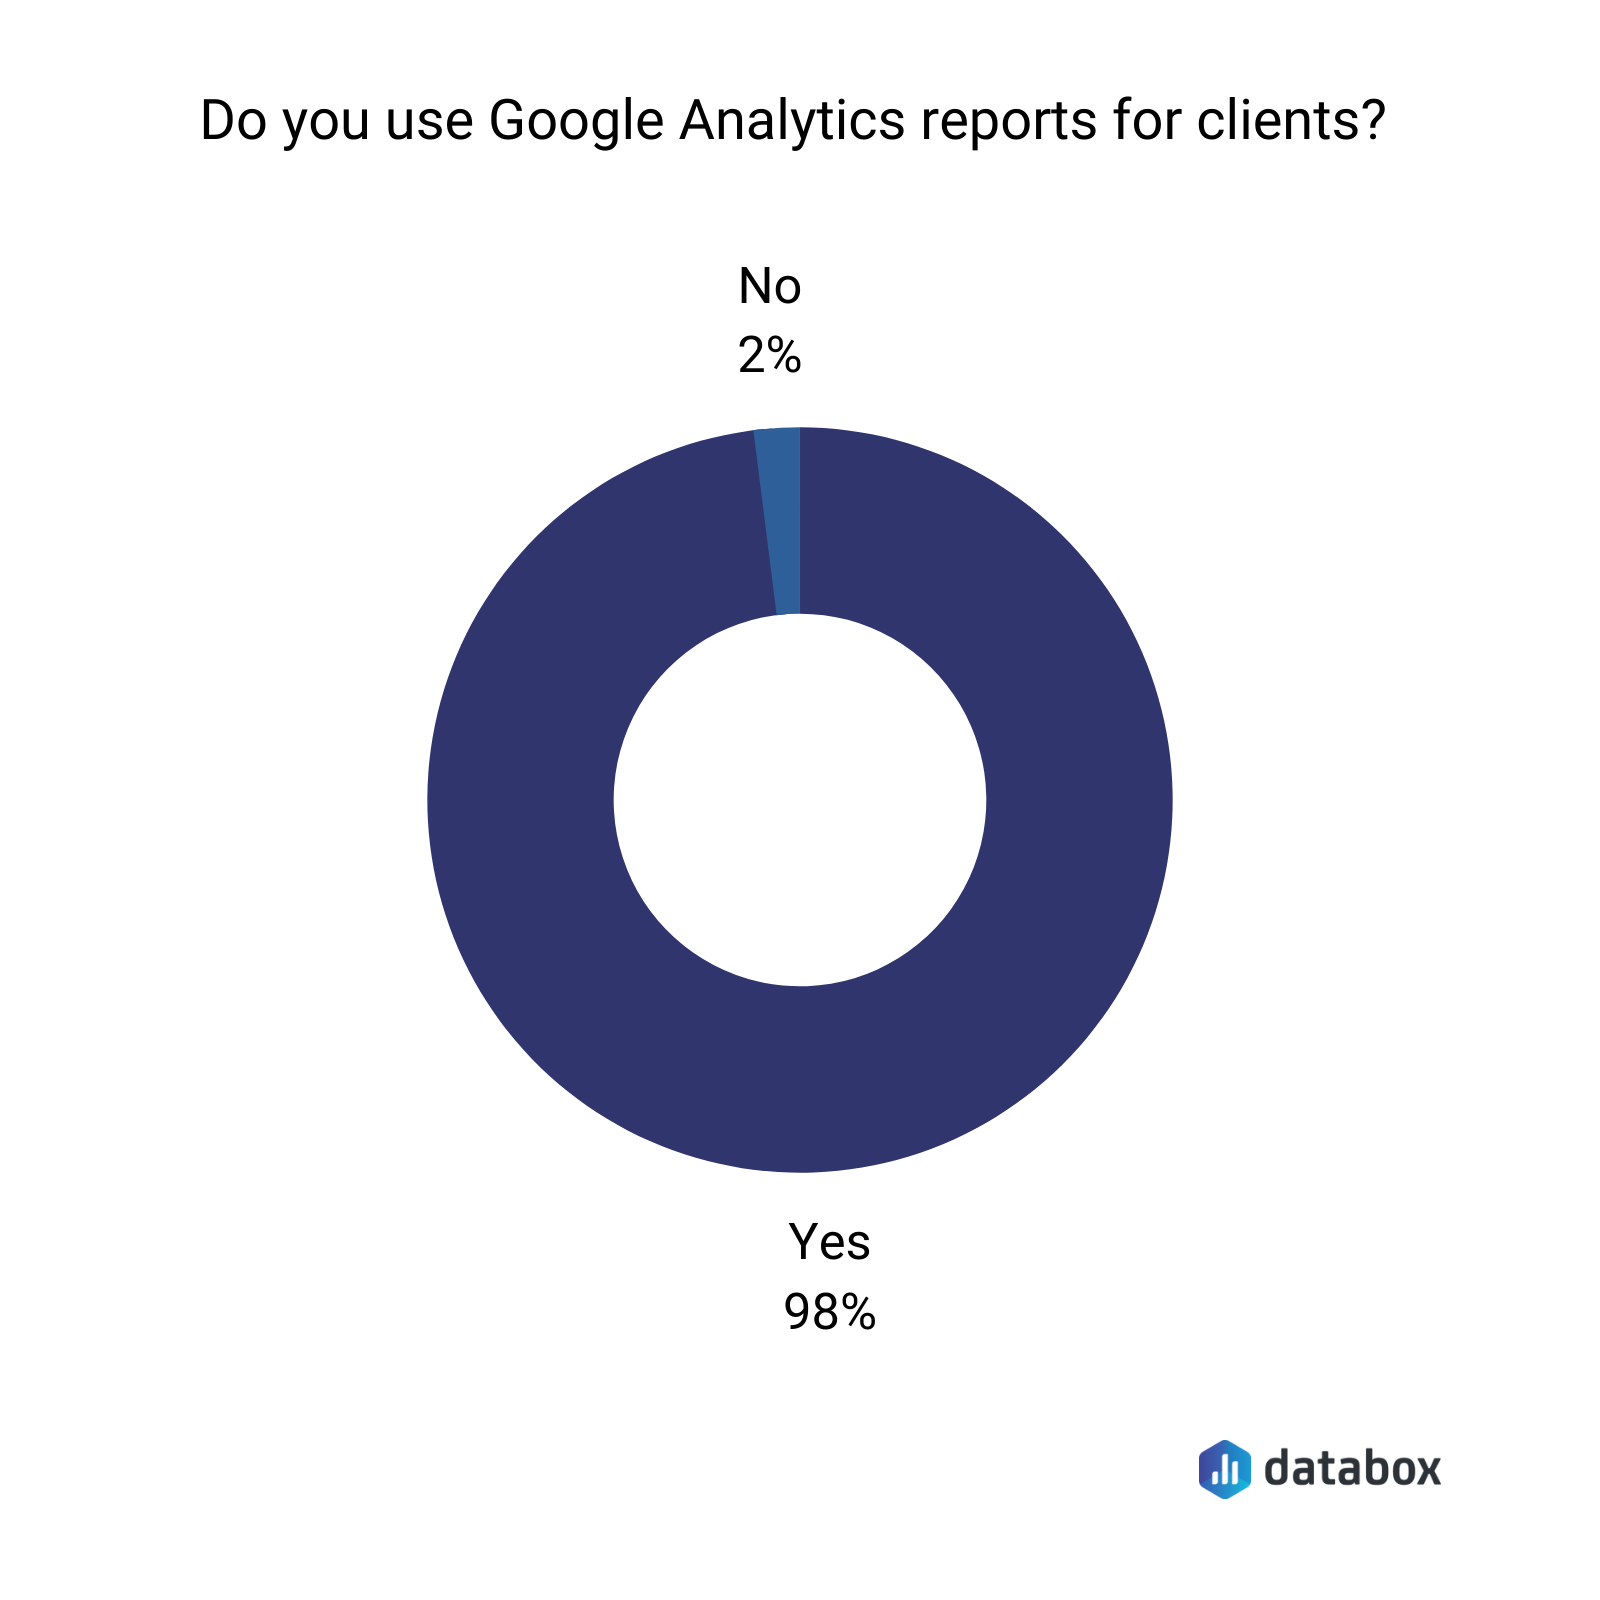 do you use google analytics reports for clients?